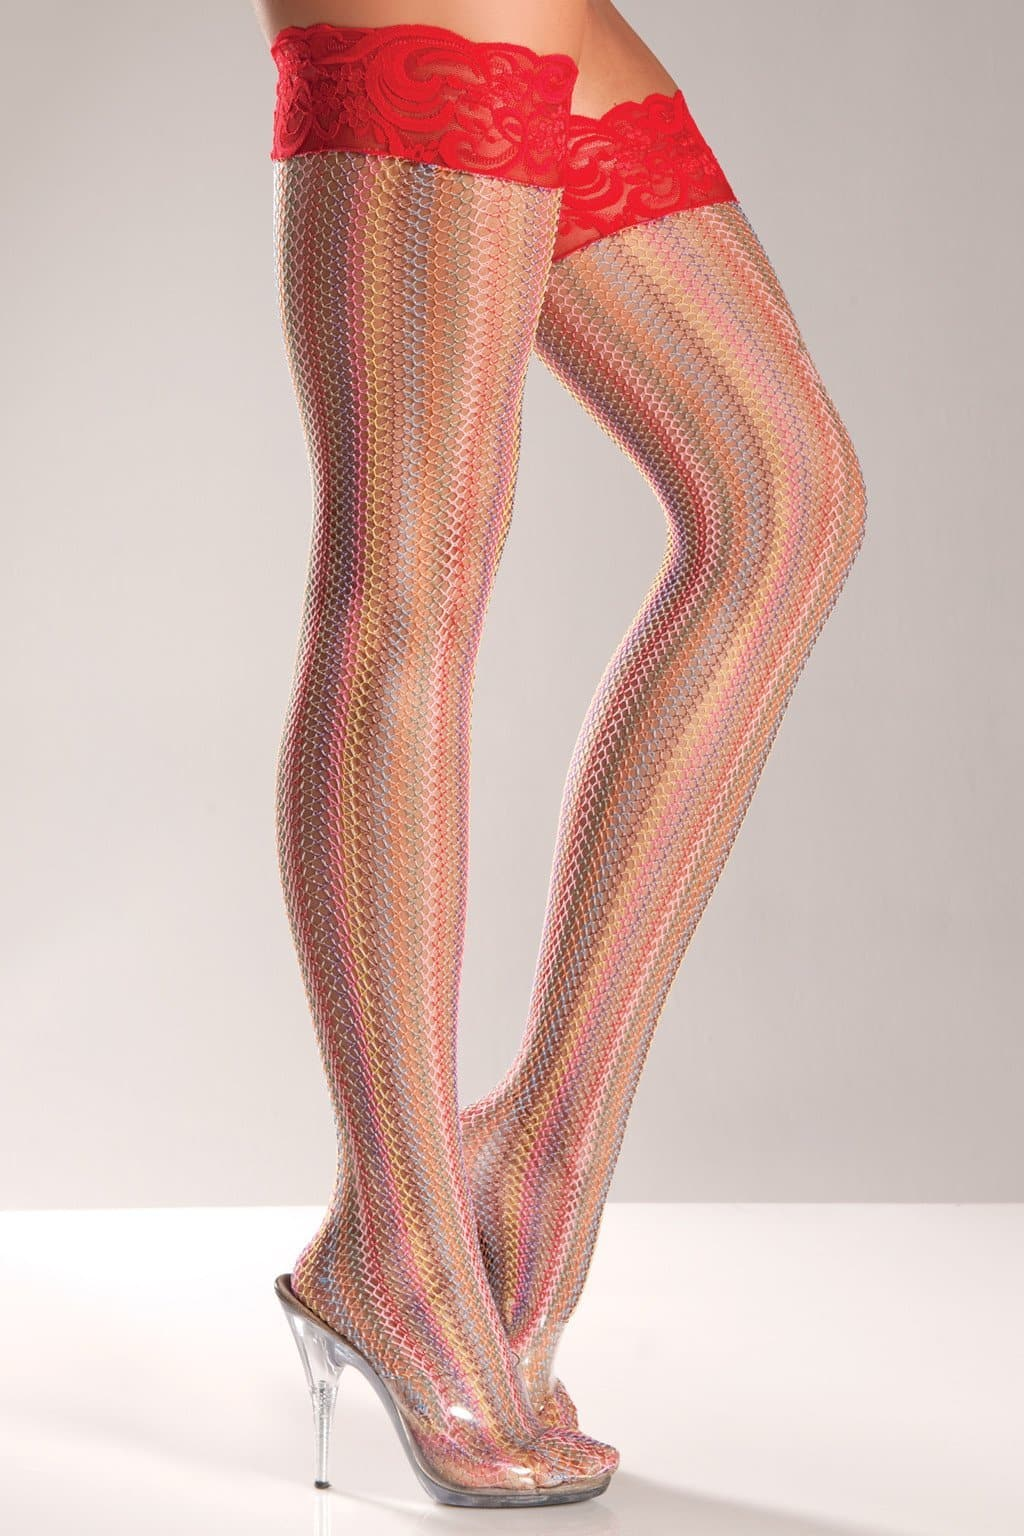 Be Wicked BW616 Rainbow Lycra Thigh Highs With Lace Top